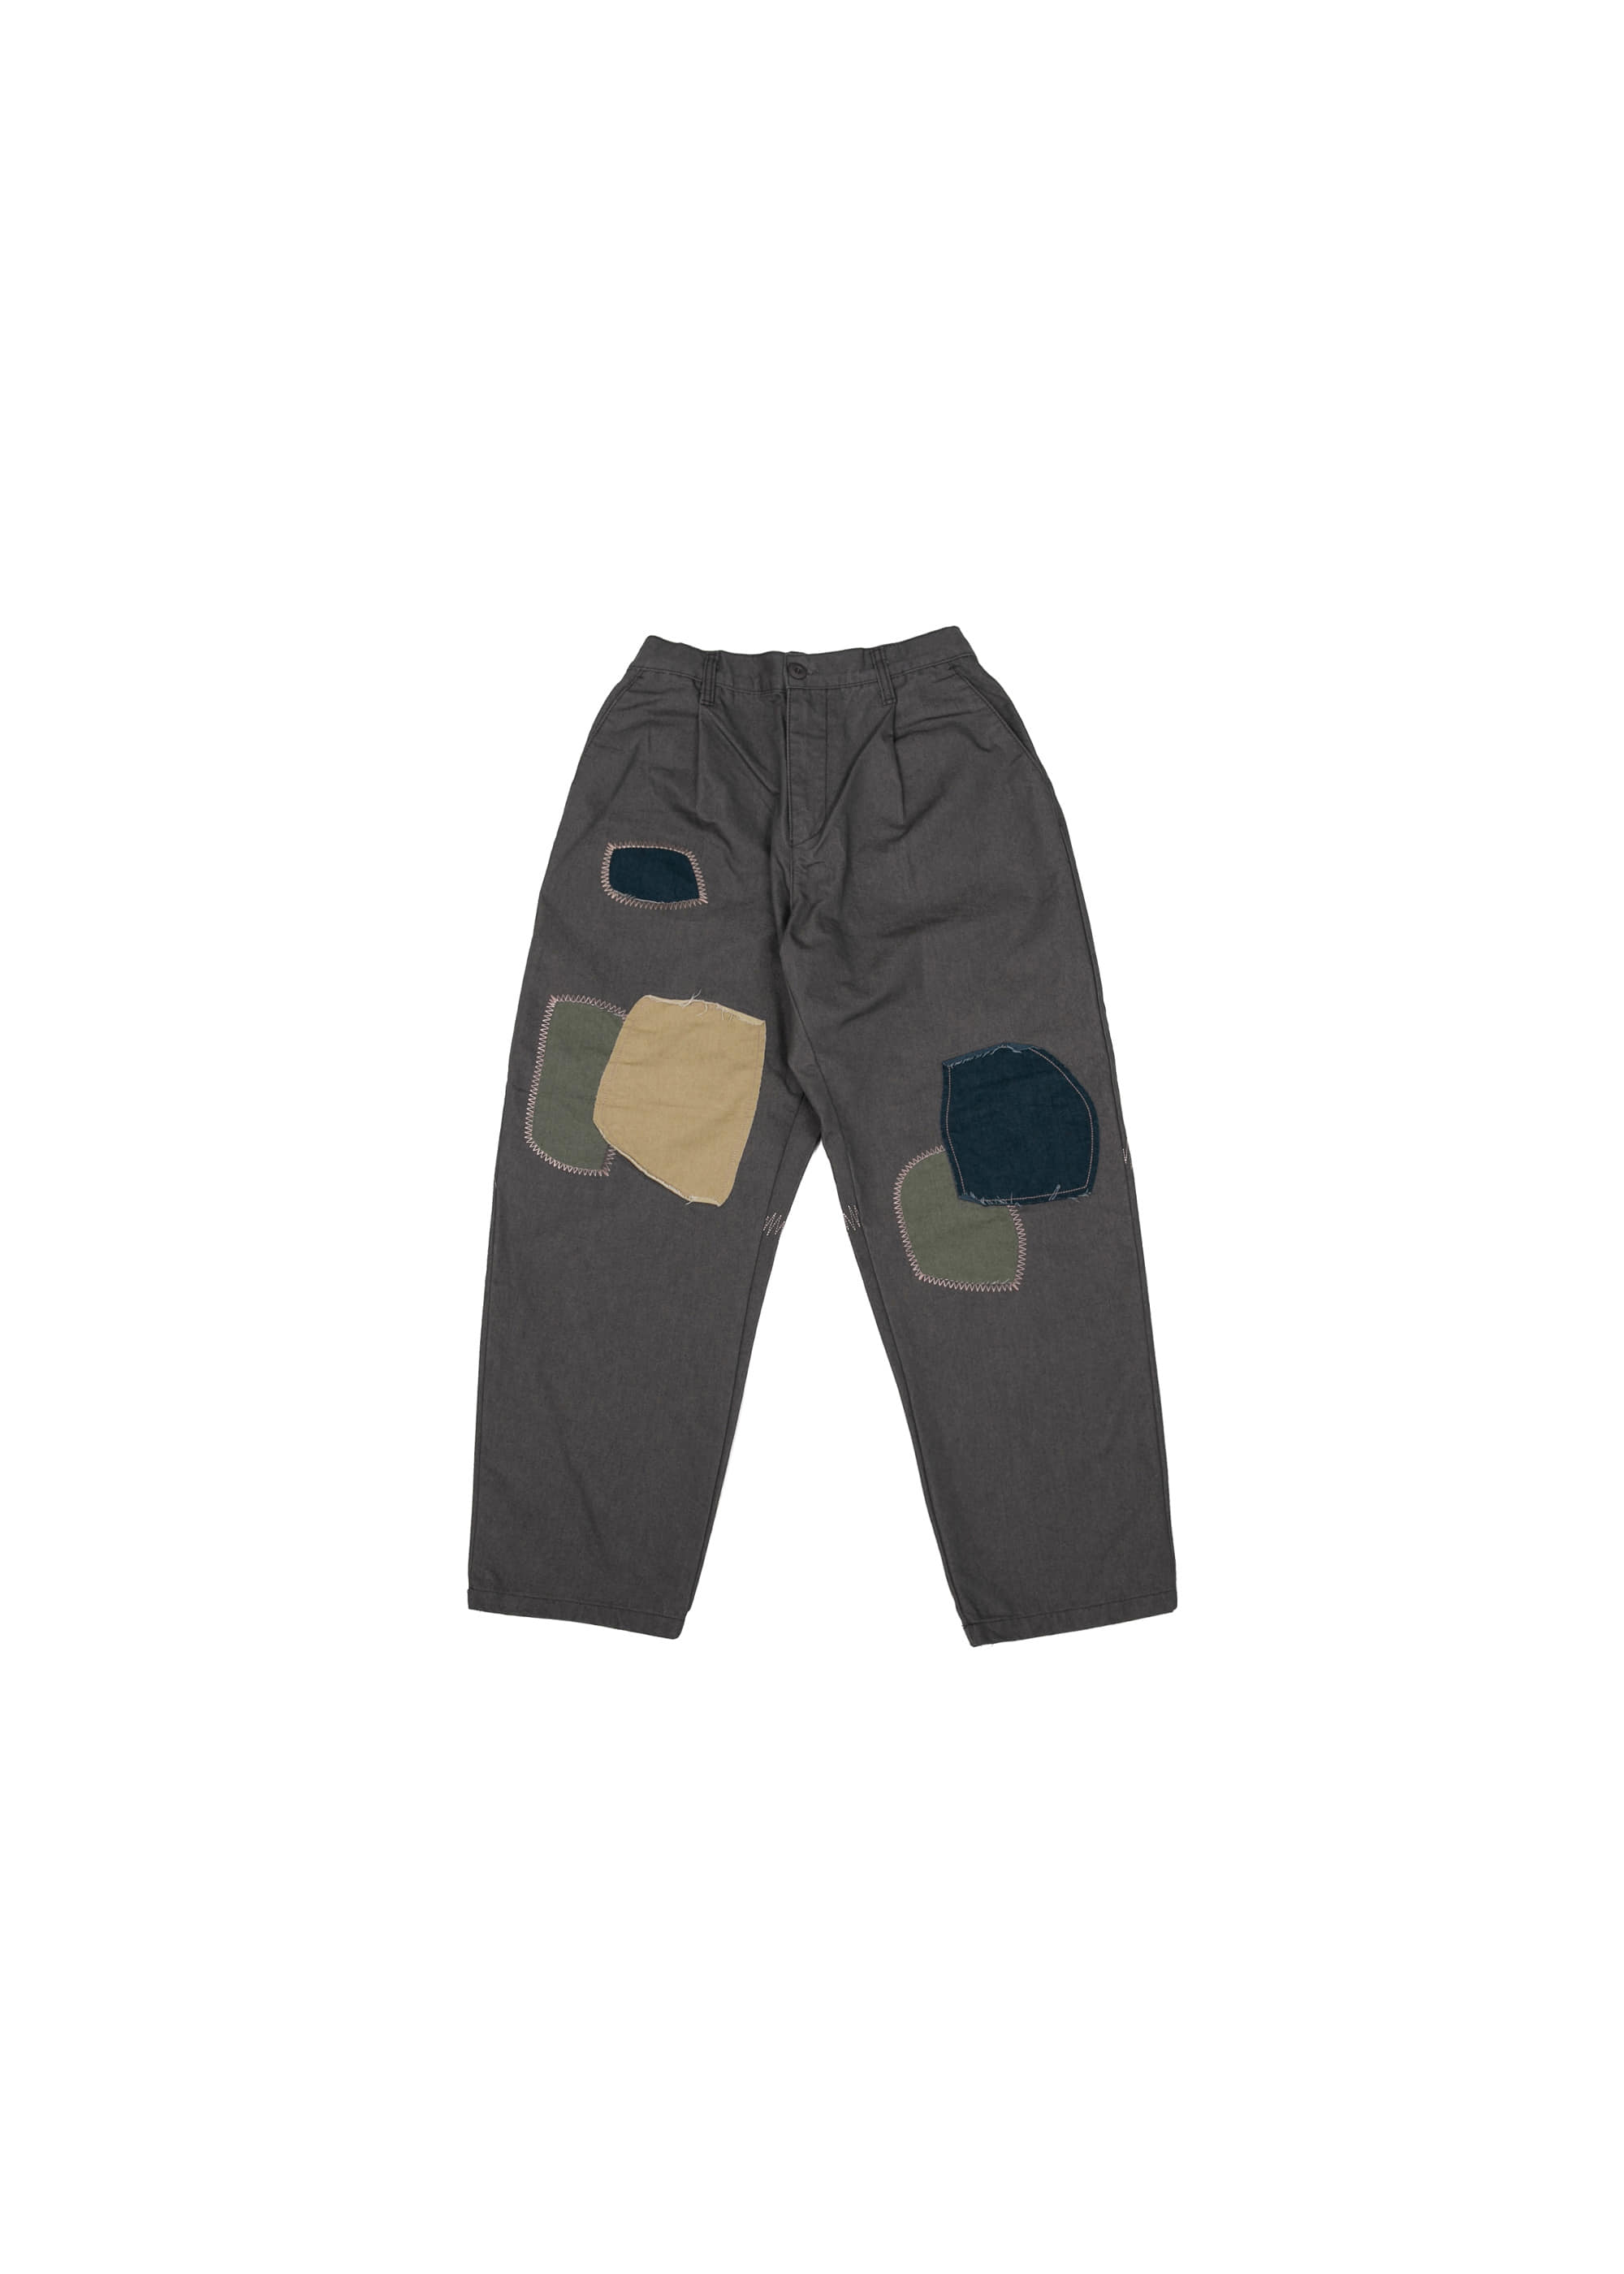 Color Combi Stitch Patch Pants - Charcoal